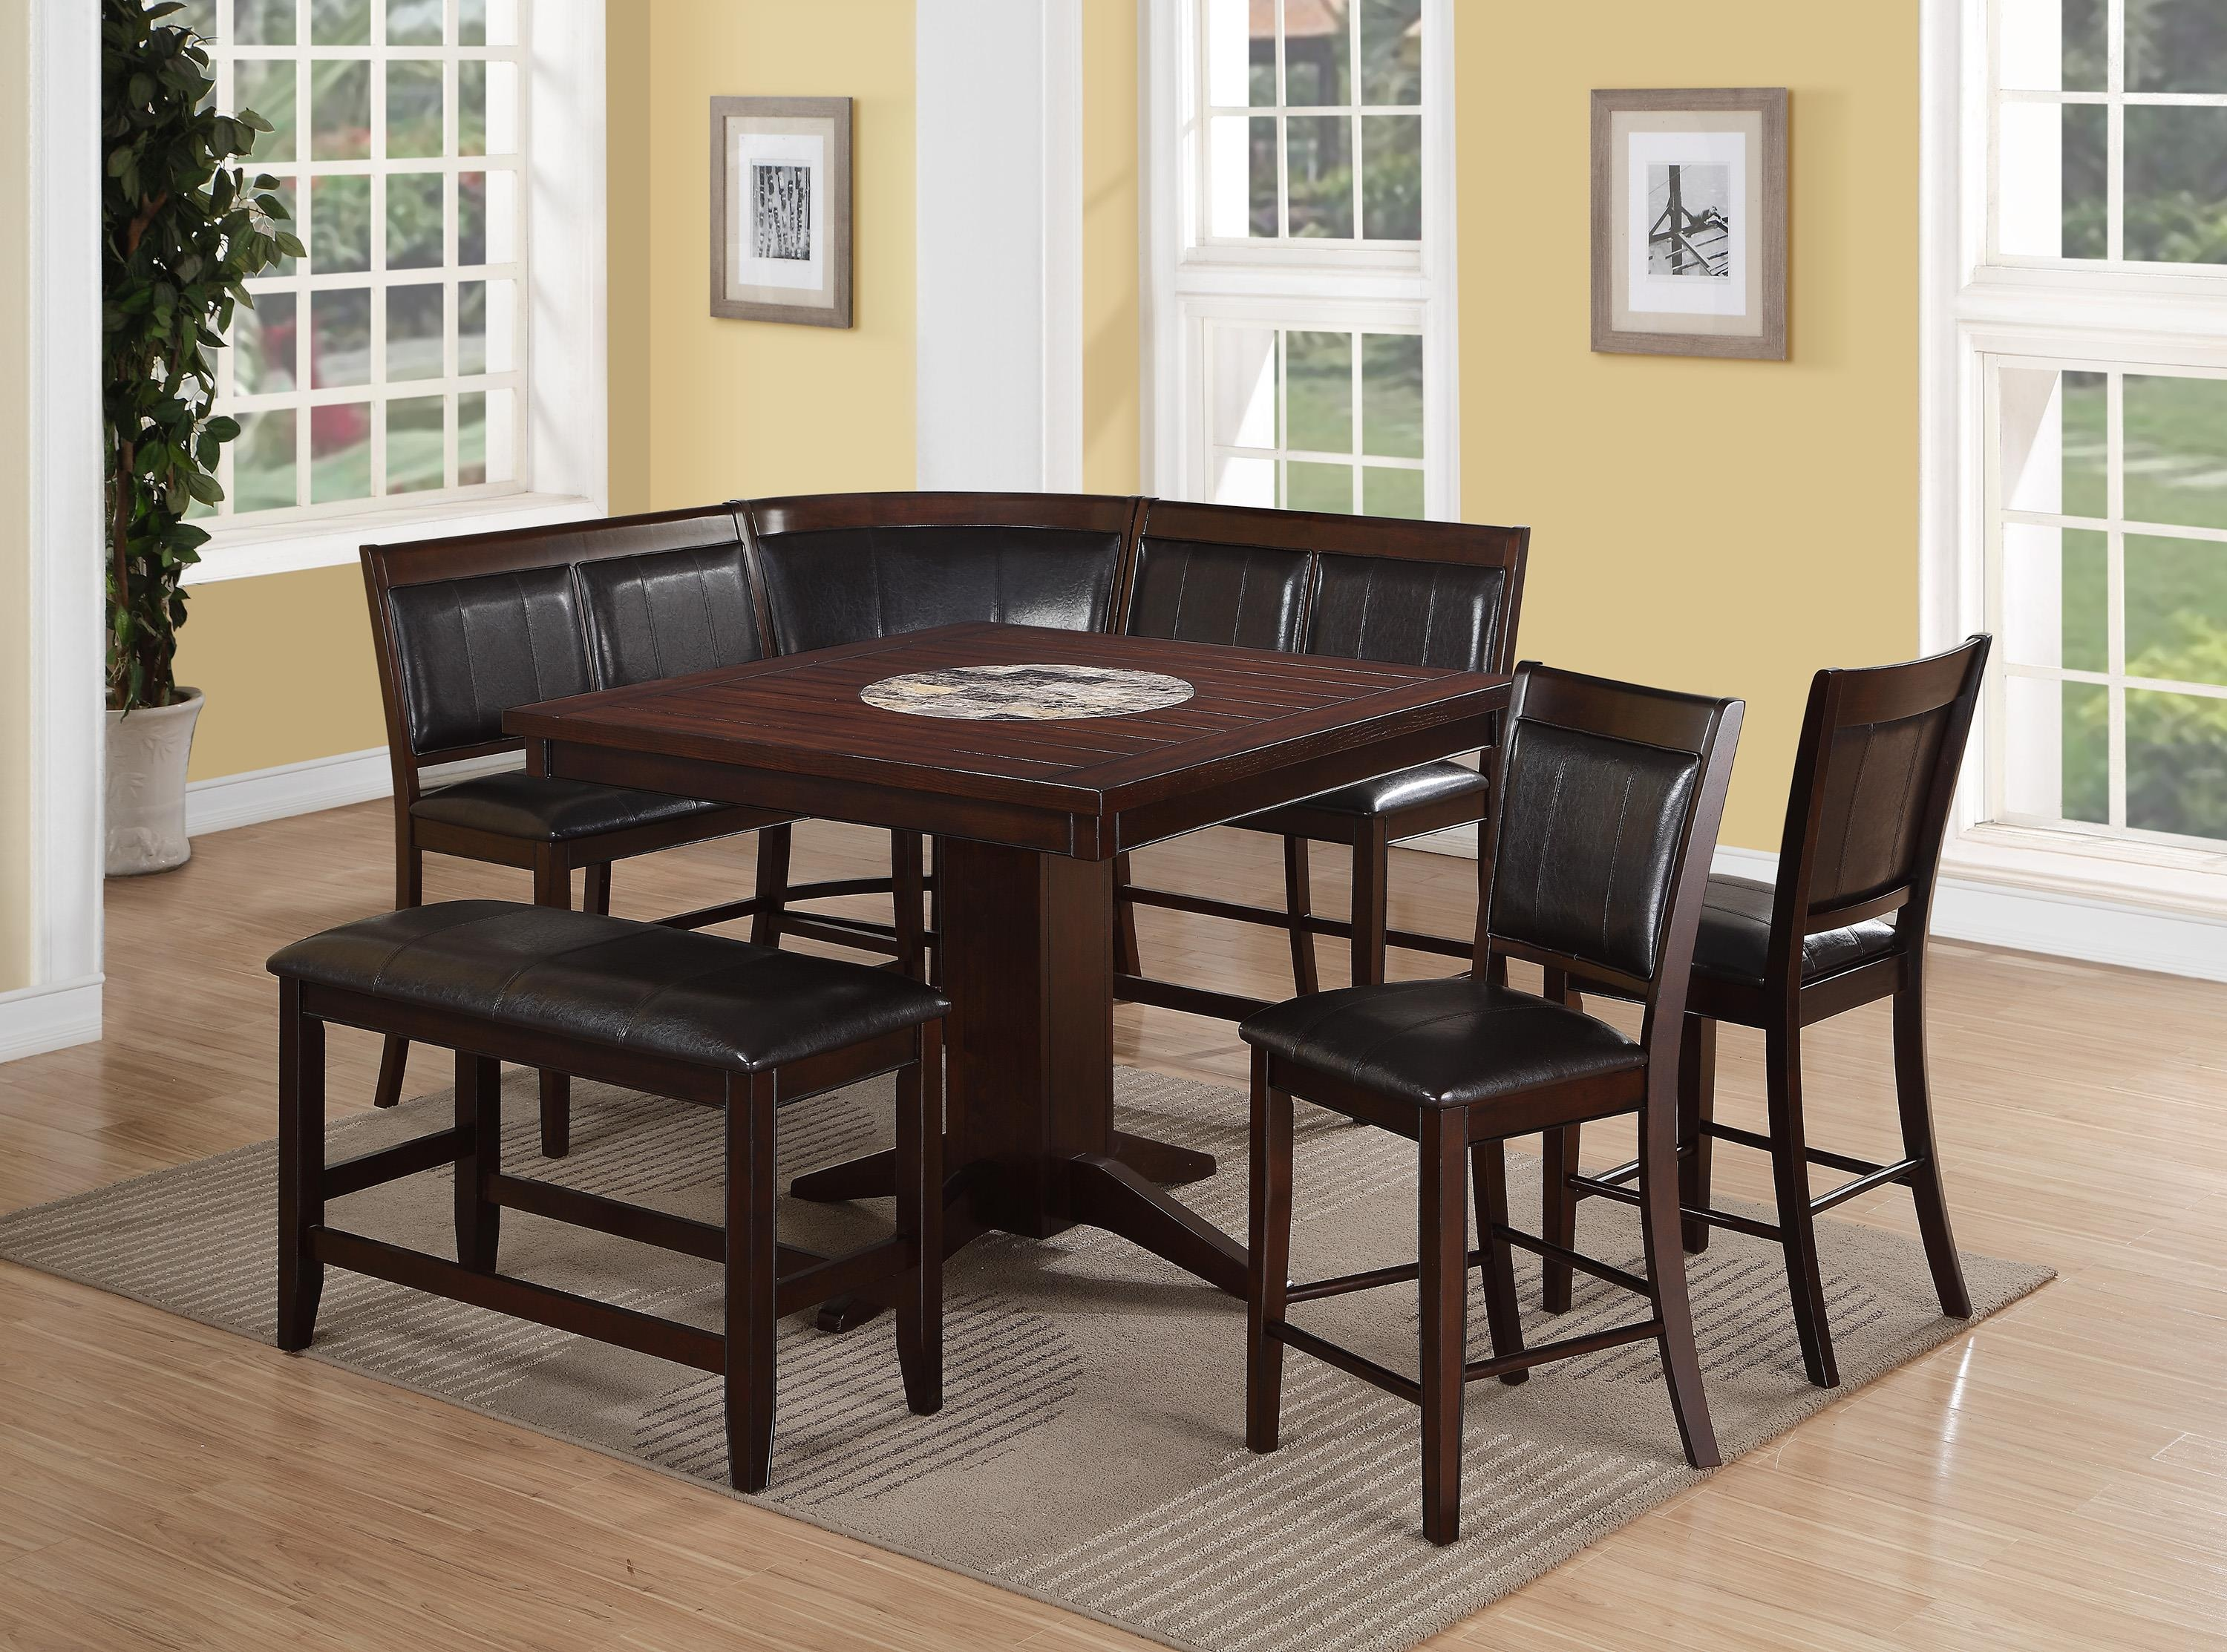 Furniture clearance center pub sets for L shaped dining room table